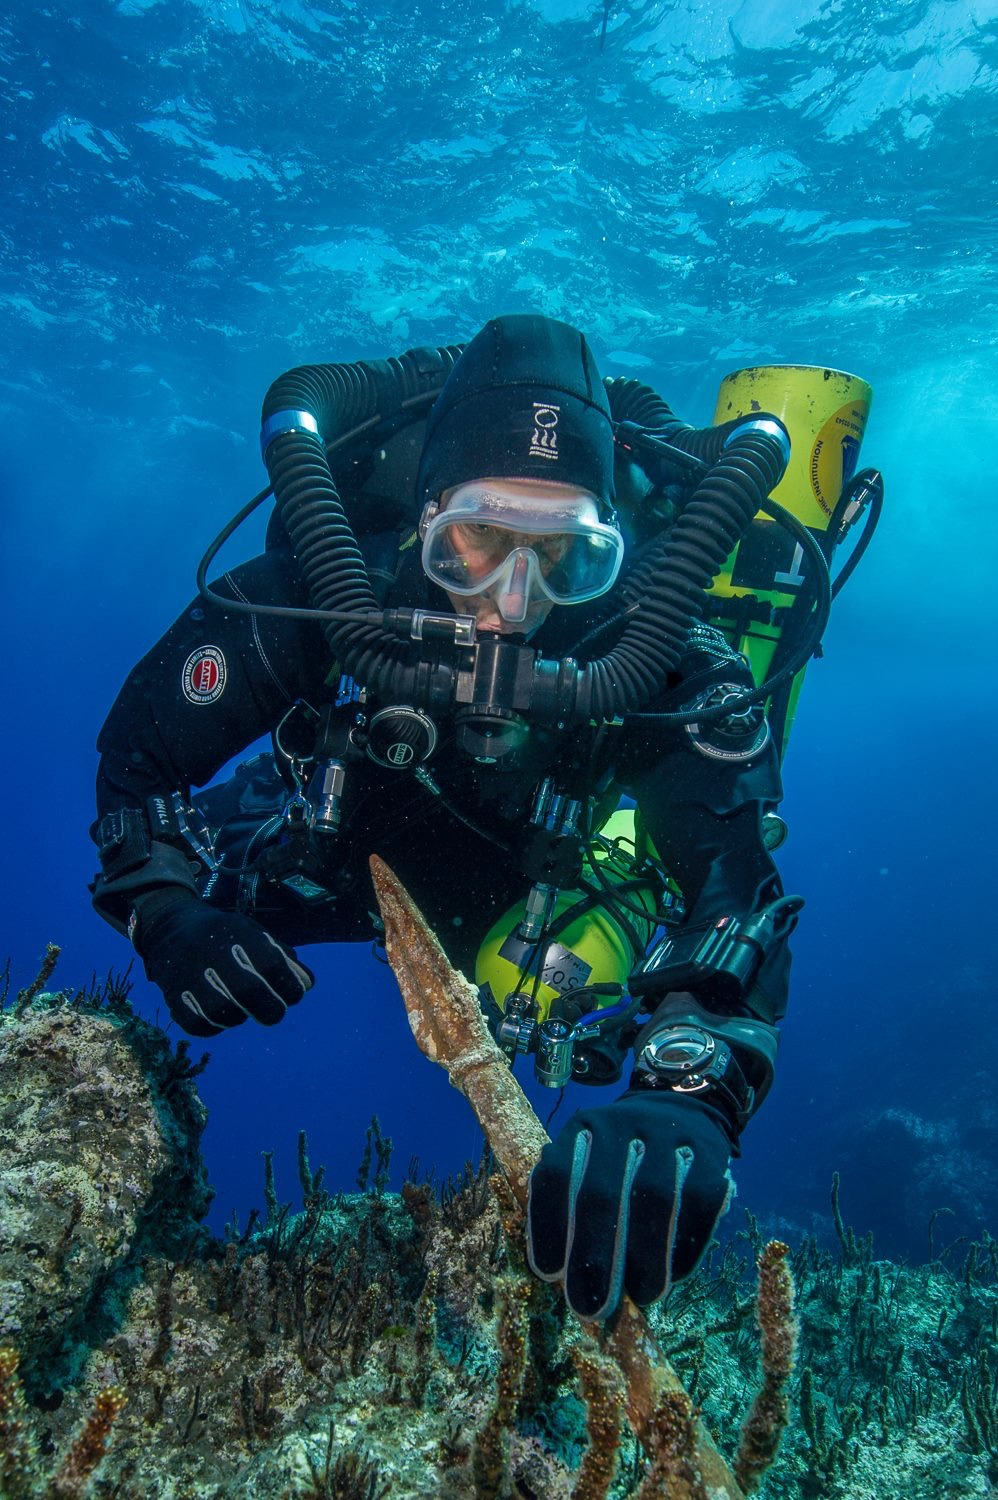 Bronze Statue Spear recovered at Antikythera shipwreck